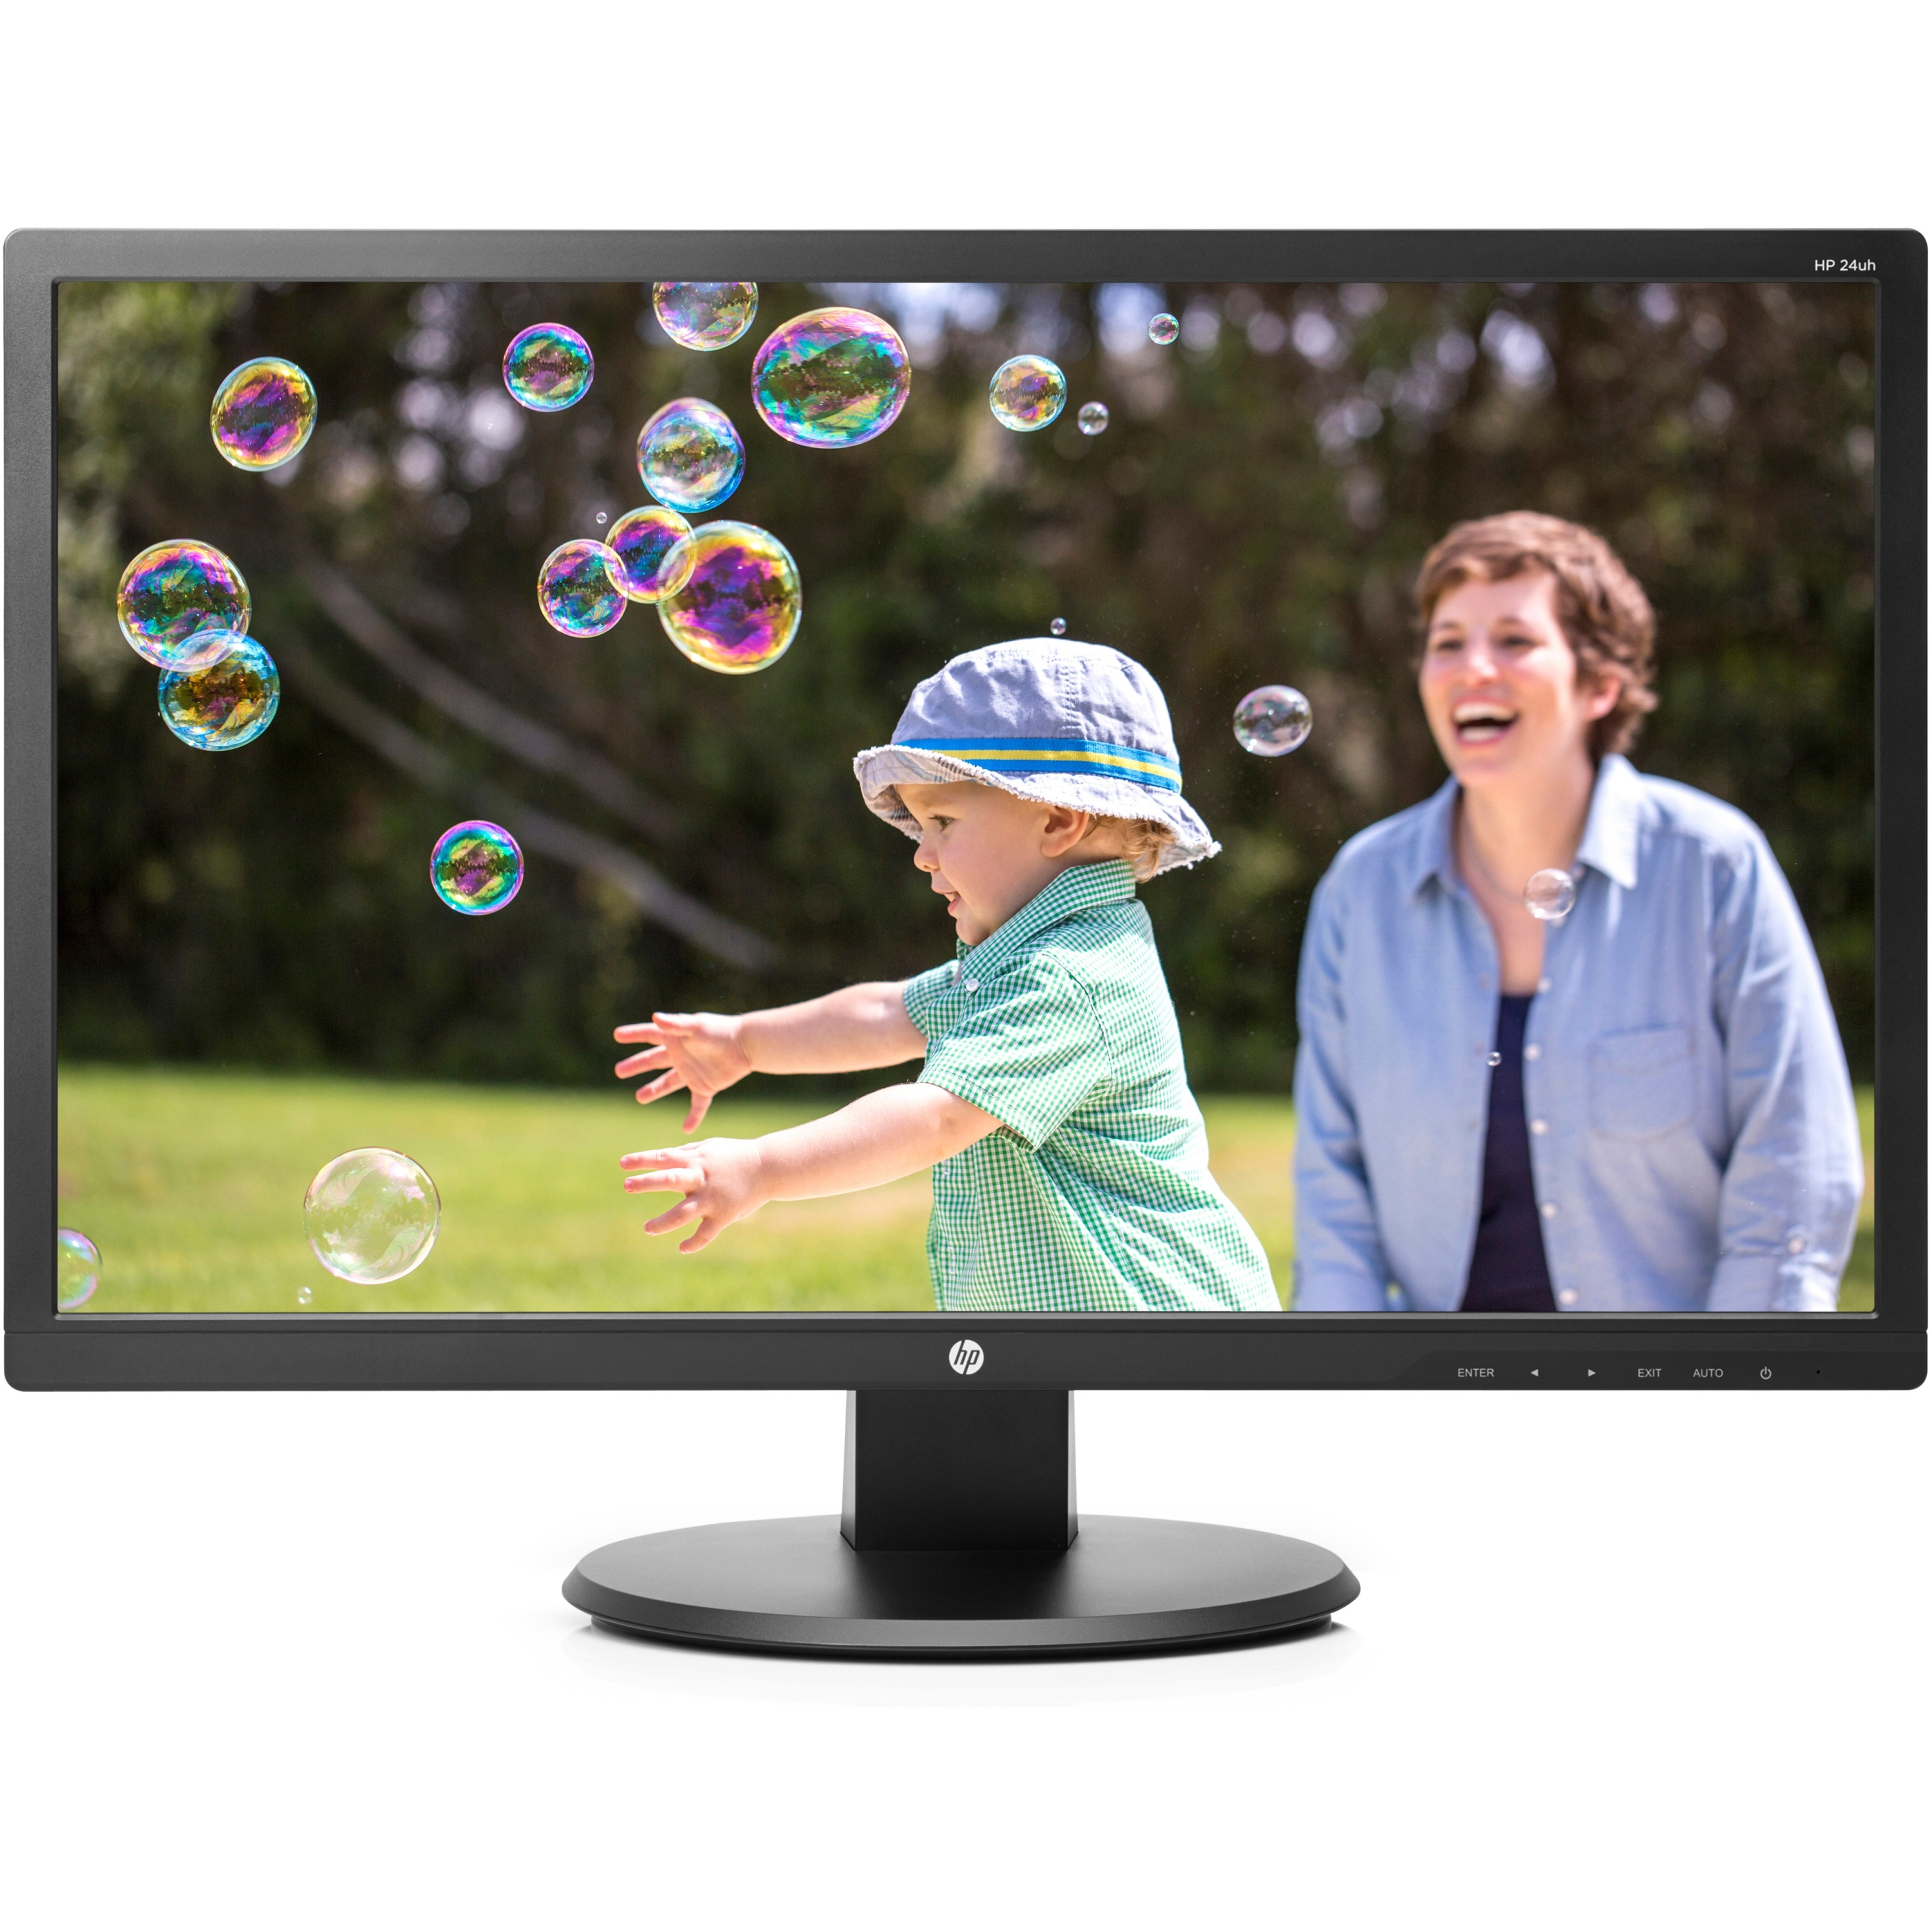 """HP 24uh 24"""" FHD LED Backlit Monitor 23 Watts w  HDMI Port (Energy Star) by HP"""